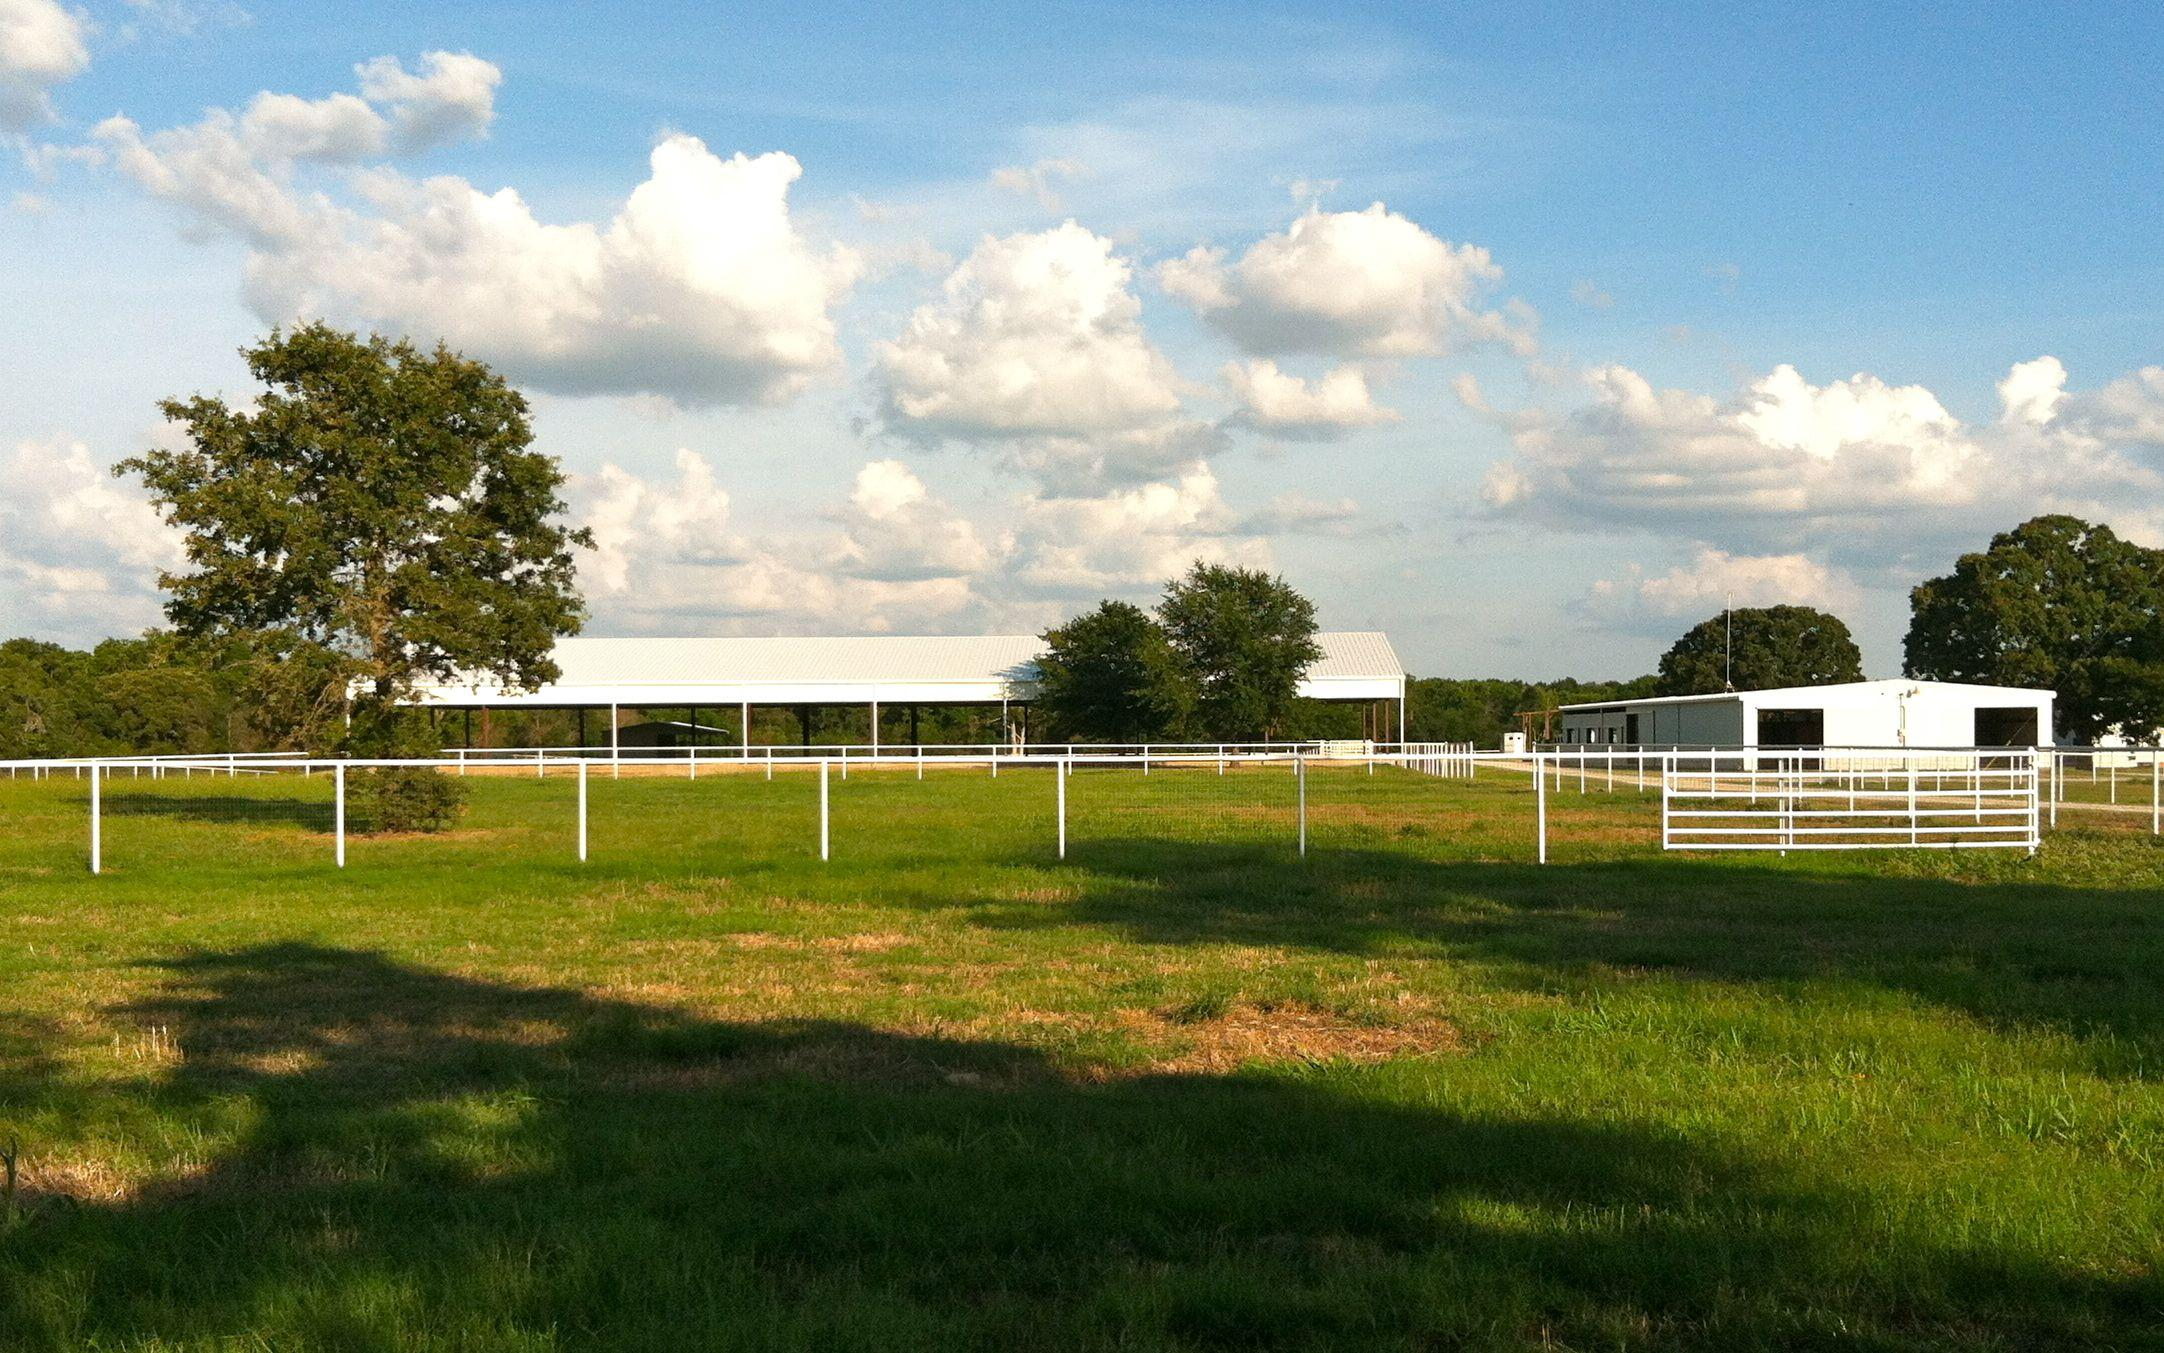 2012.06.19 View of Arena across Paddock.jpg